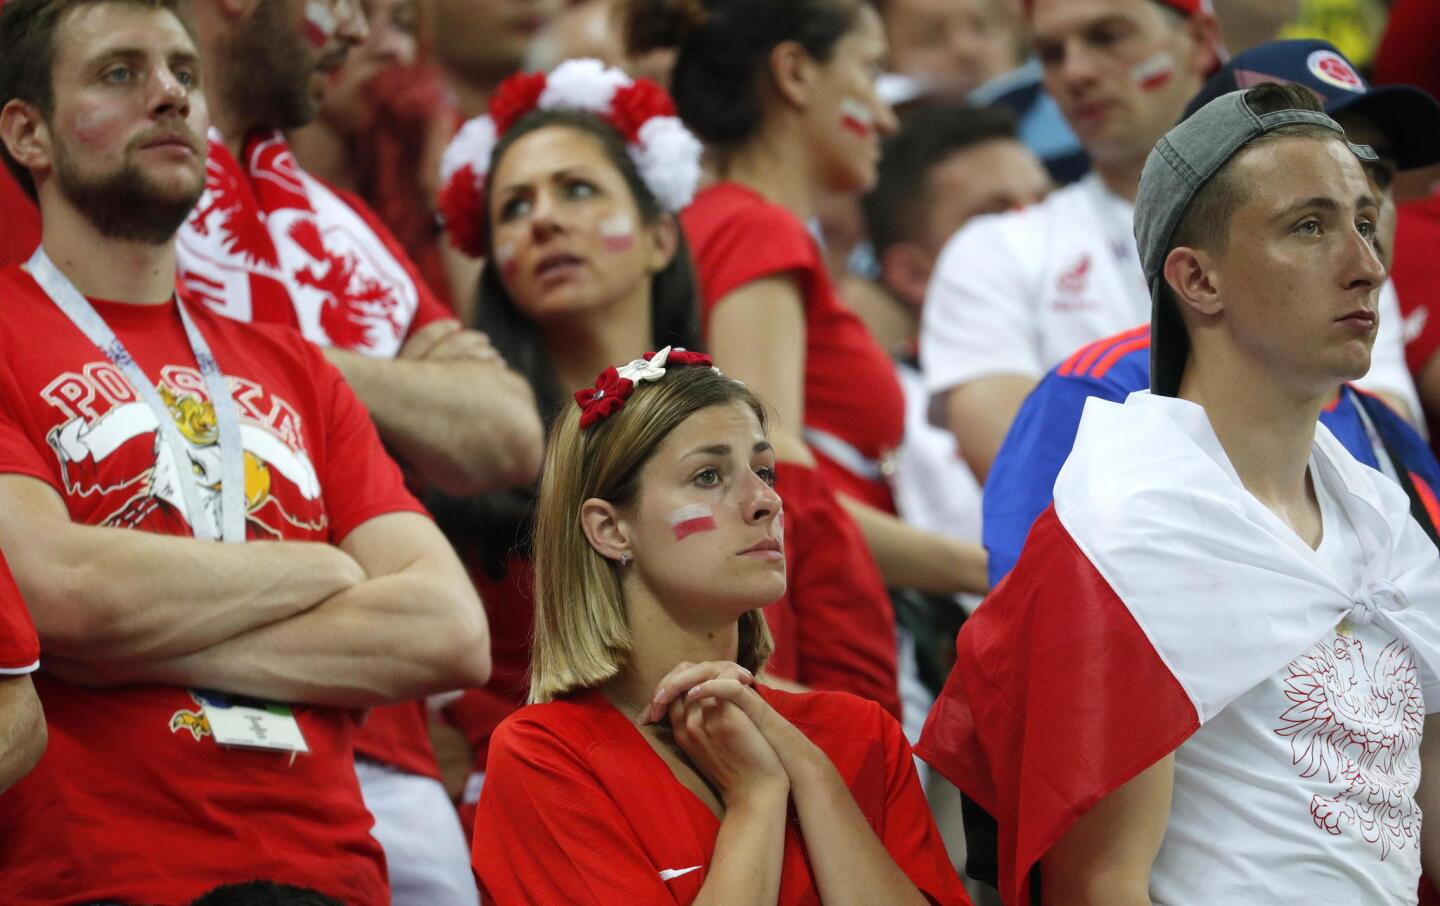 Supporters of Poland react after the FIFA World Cup 2018 group H preliminary round soccer match between Poland and Colombia in Kazan, Russia, 24 June 2018. Poland lost the match 0-3.